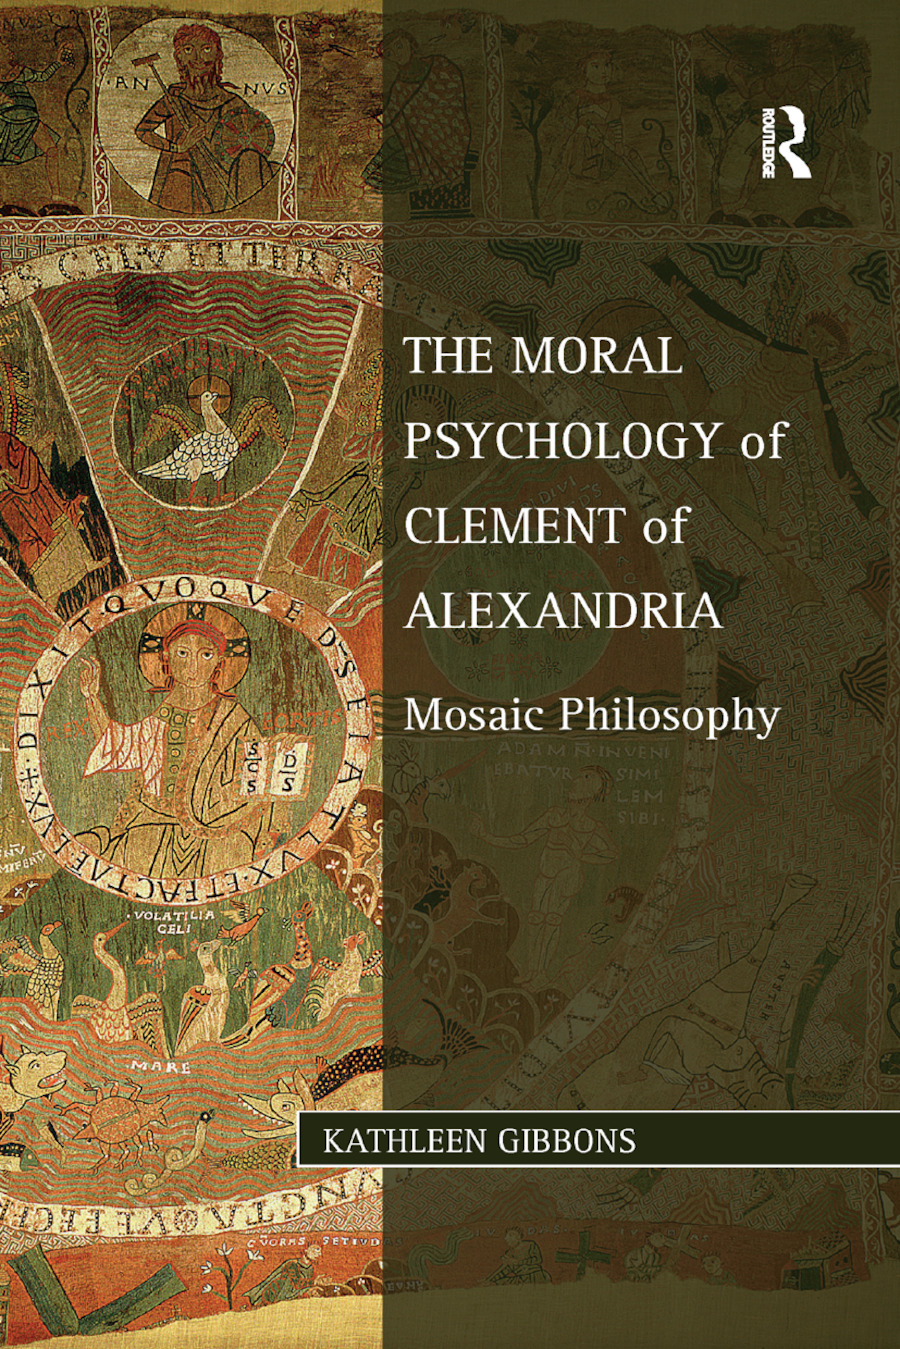 The Moral Psychology of Clement of Alexandria: Mosaic Philosophy book cover